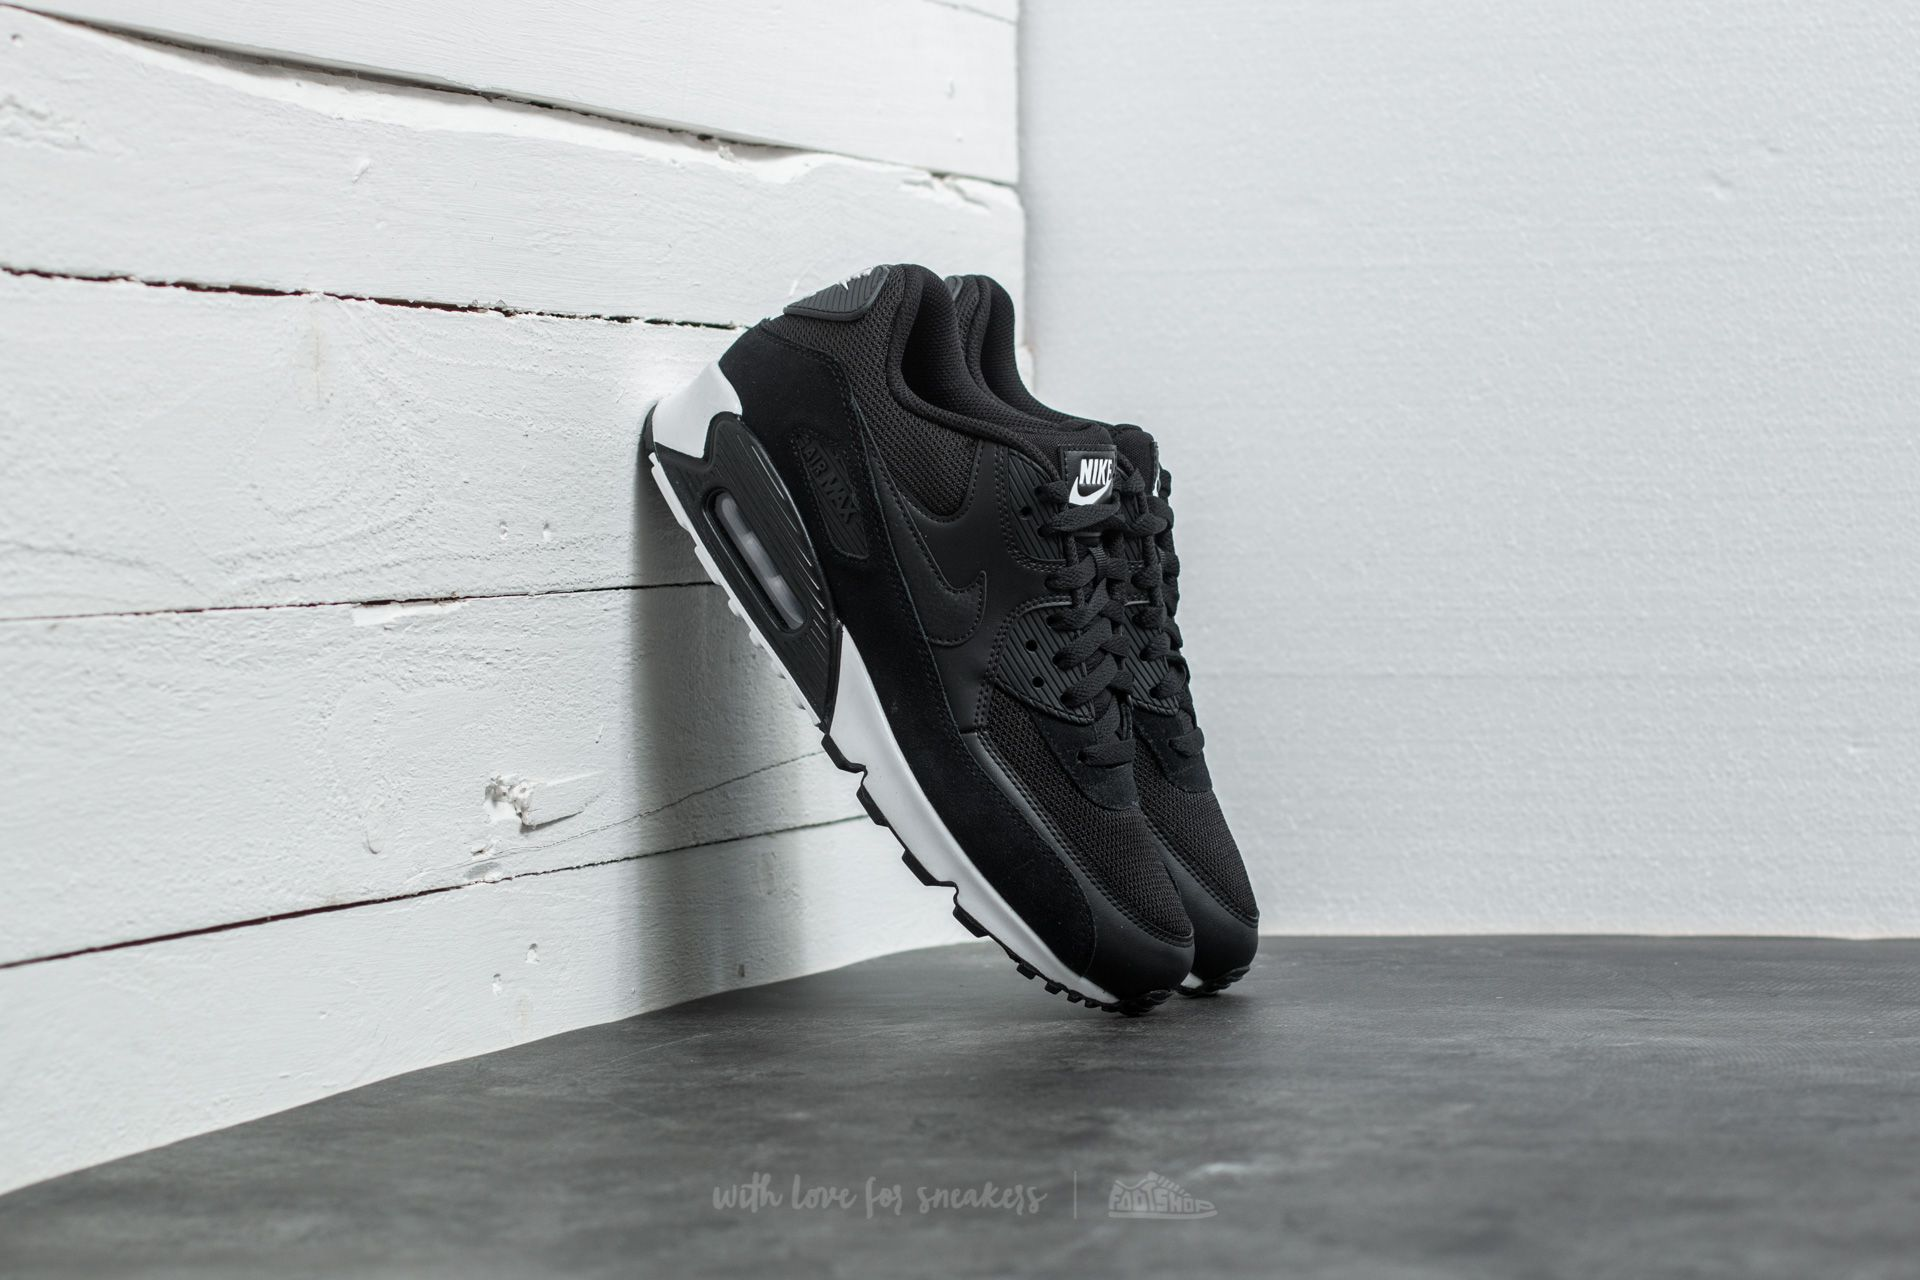 884776236029 UPC - Nike Air Max 90 Essential Black/ Black White